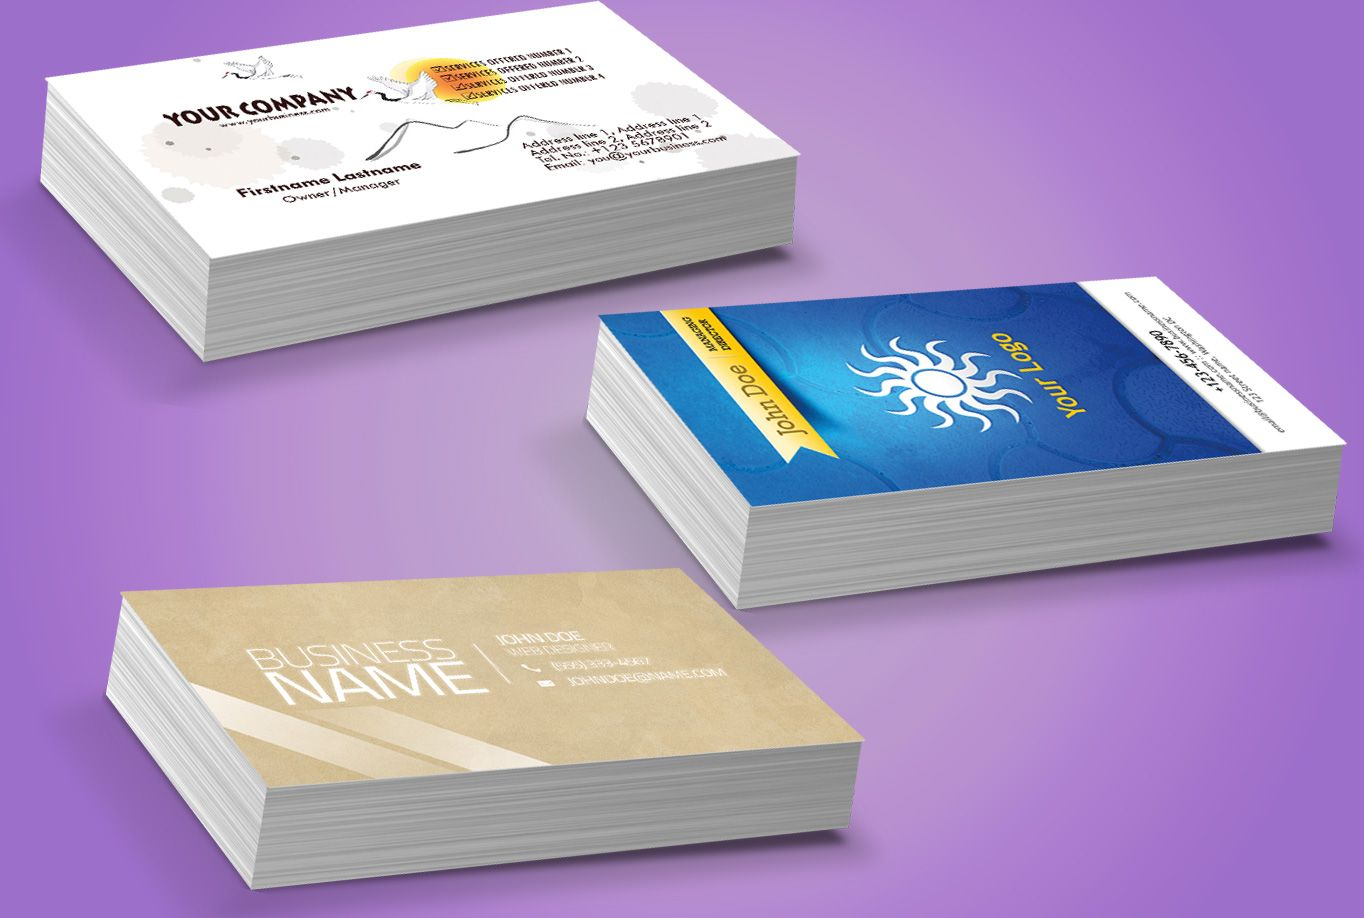 cornelv : I will design a professional business card for $15 on www ...